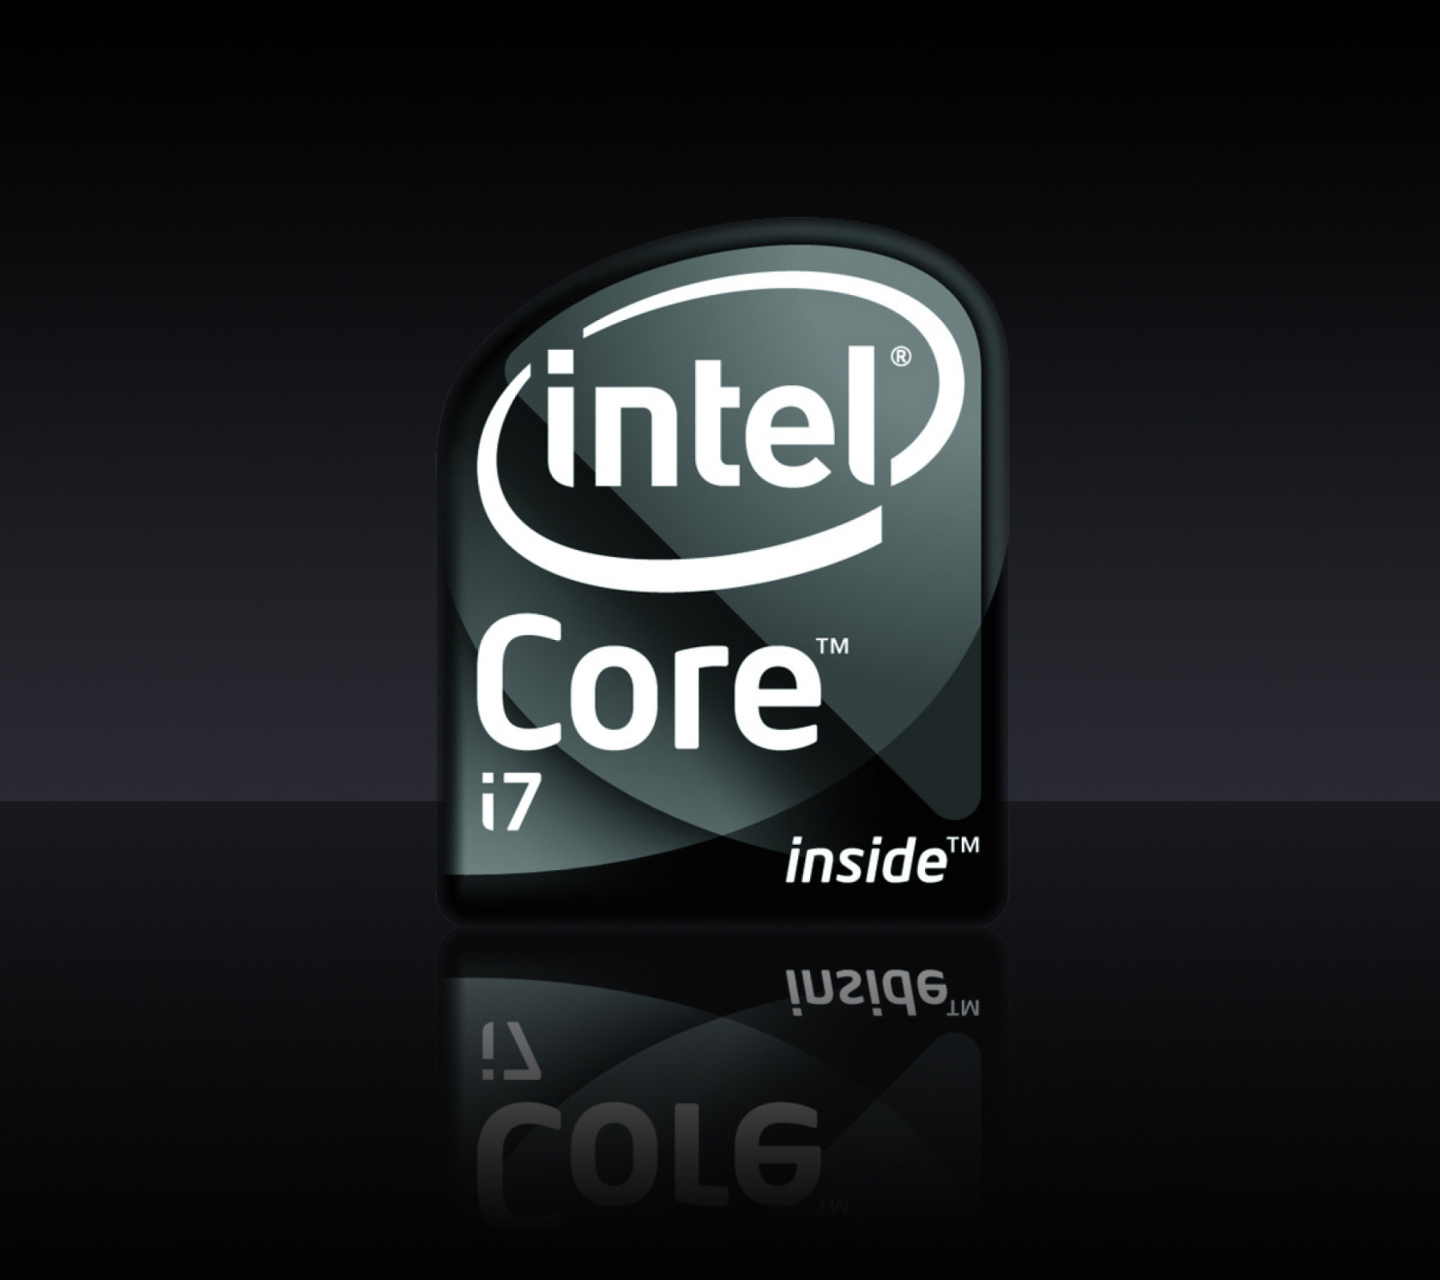 Intel Core I7 wallpaper 1440x1280